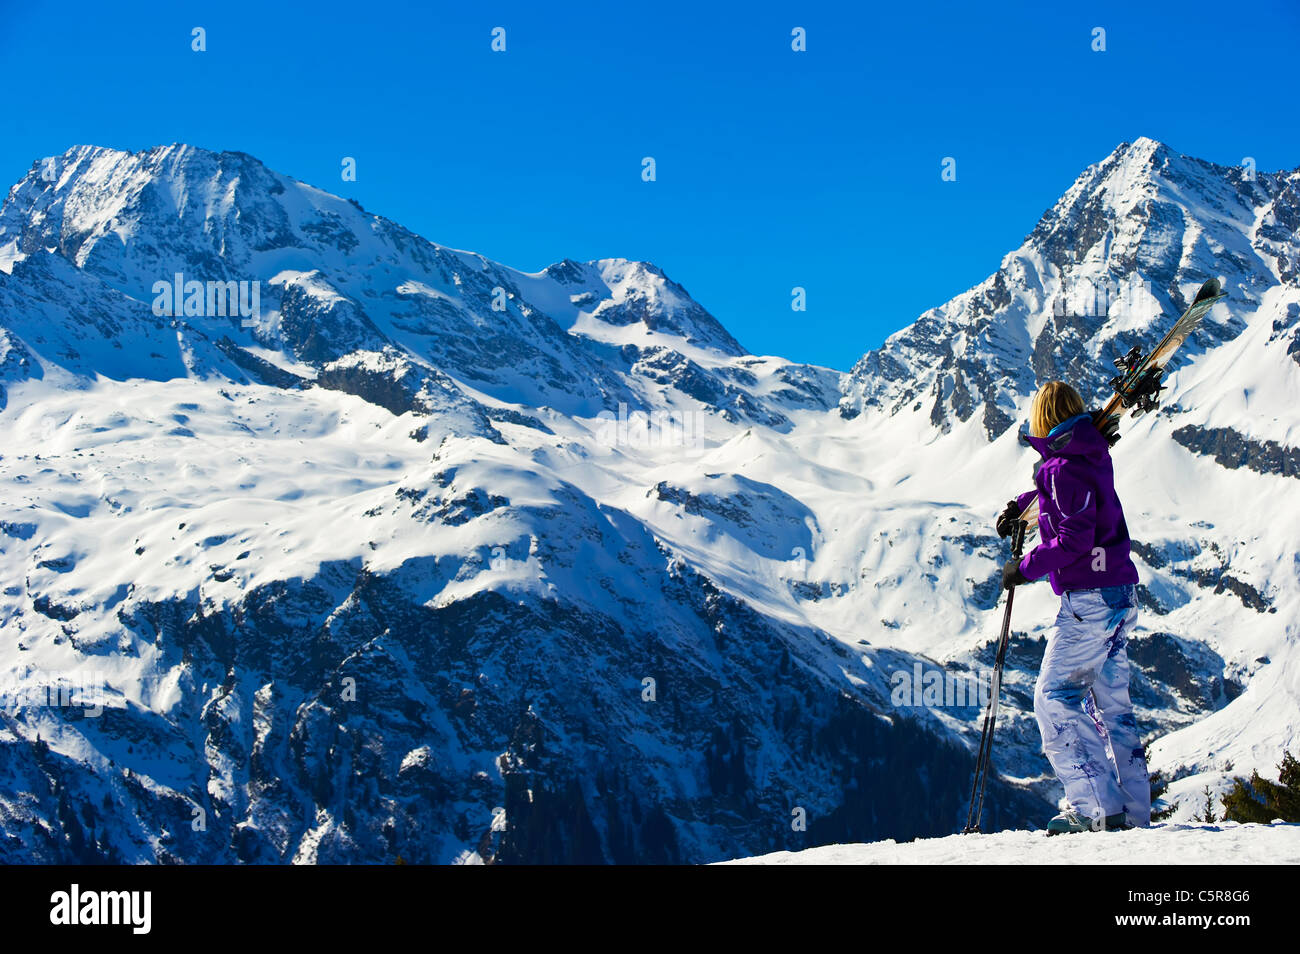 A skier looks out over a stunning winter snowy mountains. Stock Photo